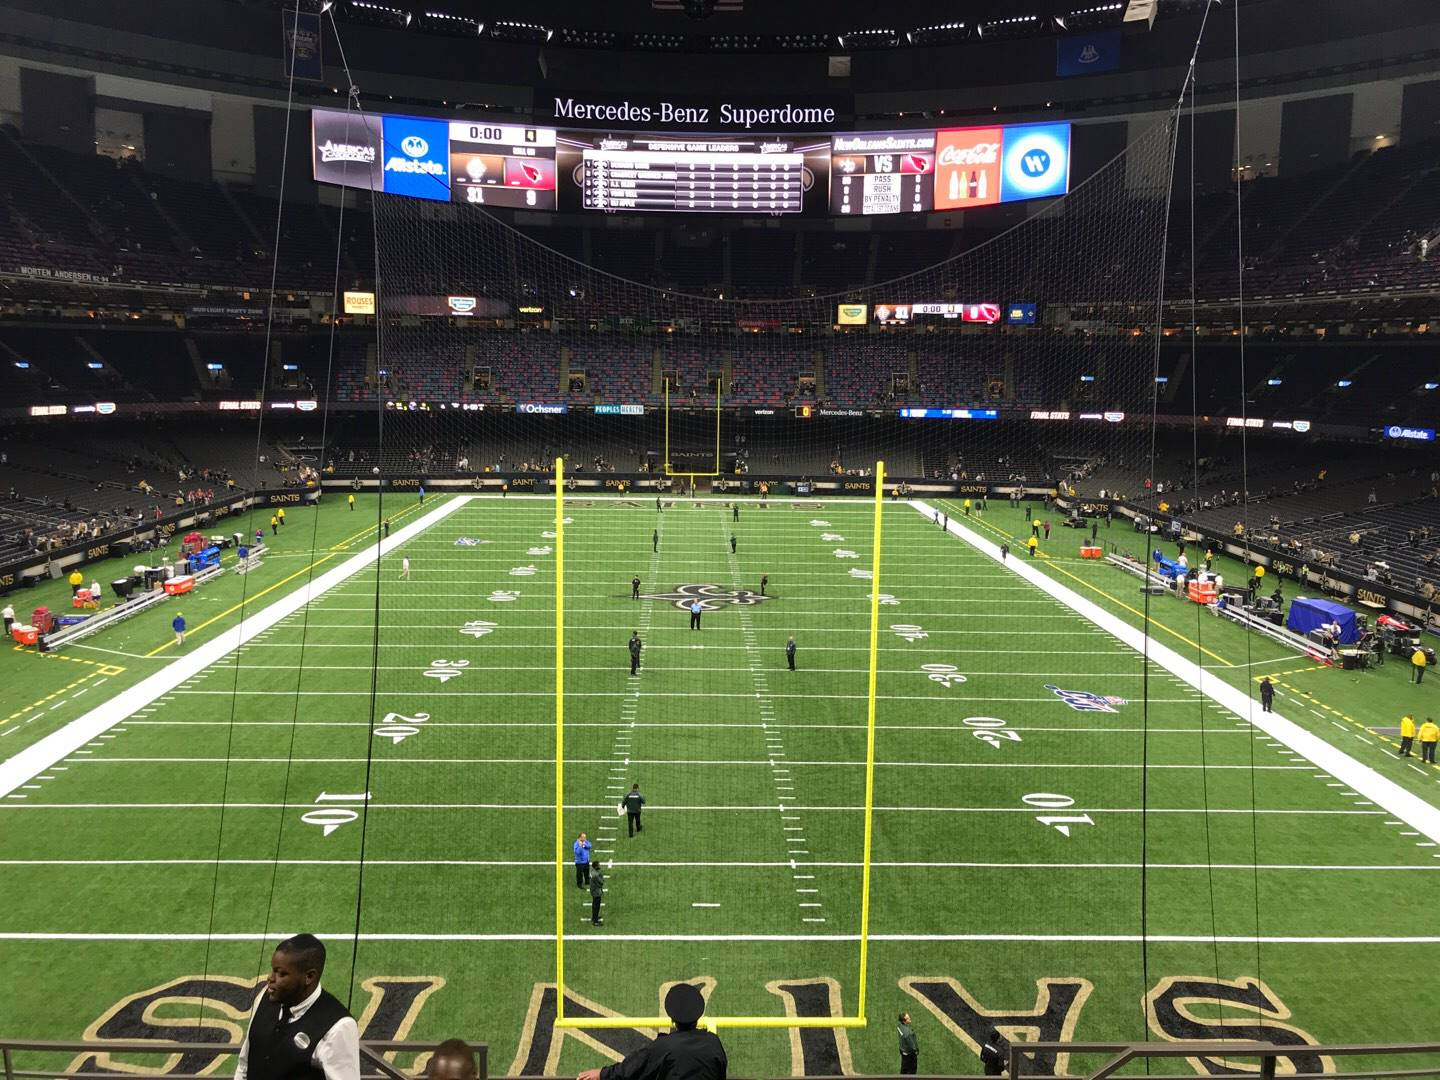 Mercedes-Benz Superdome Section 338 Row 10 Seat 8